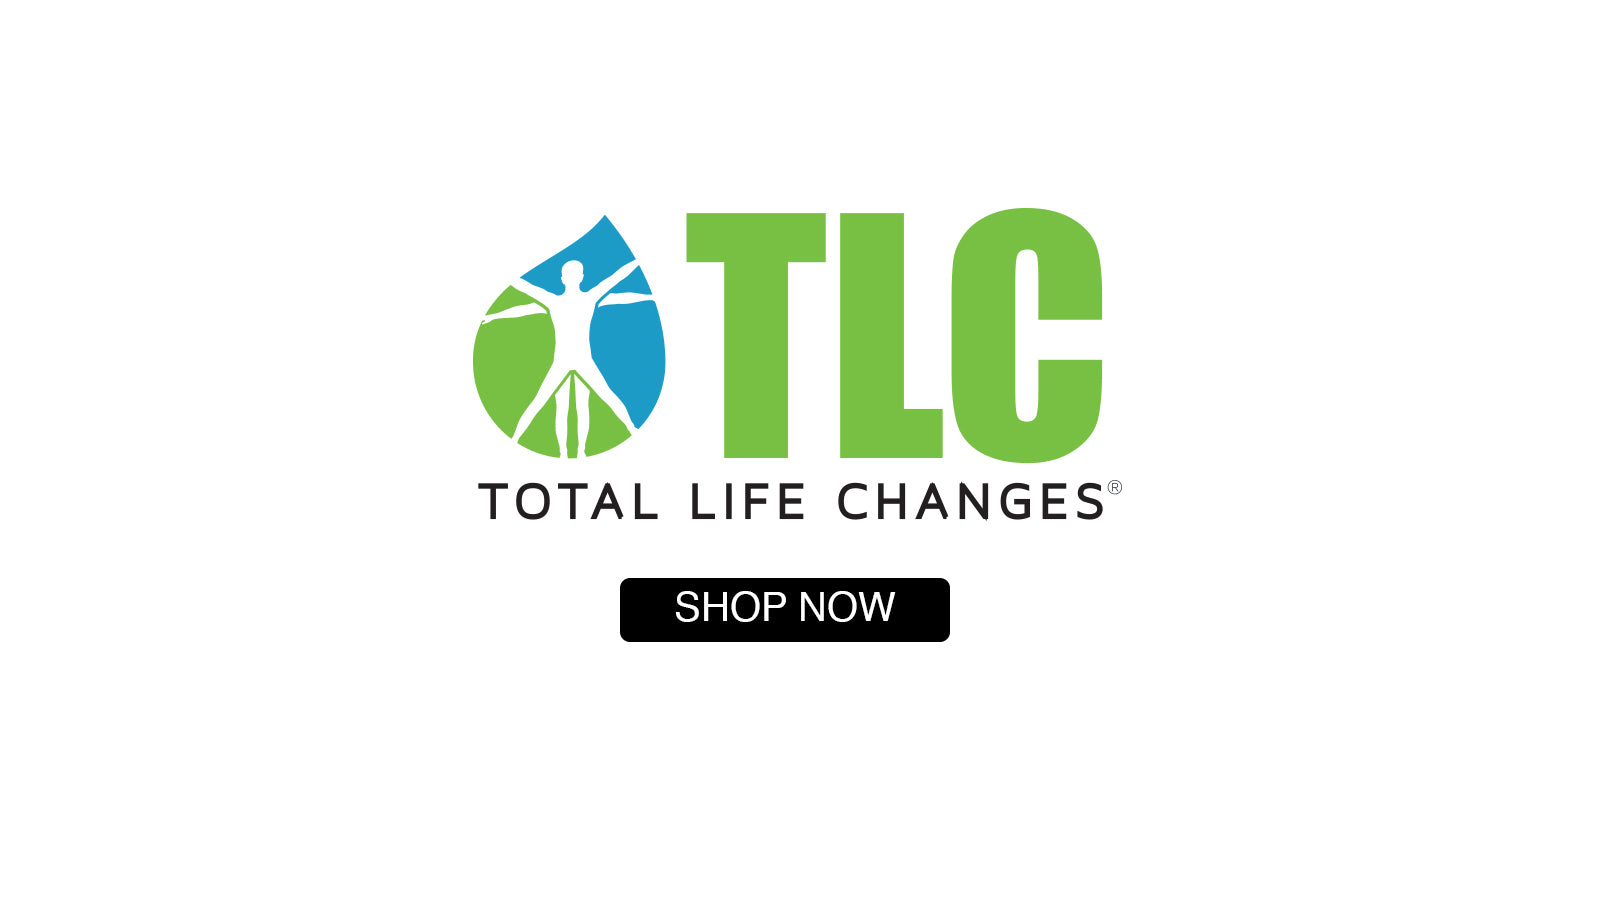 Spree Retail | Home Accessories | Fitness Accessories | Home Decor | Pet Gear | Total Life Changing products | T-shirts